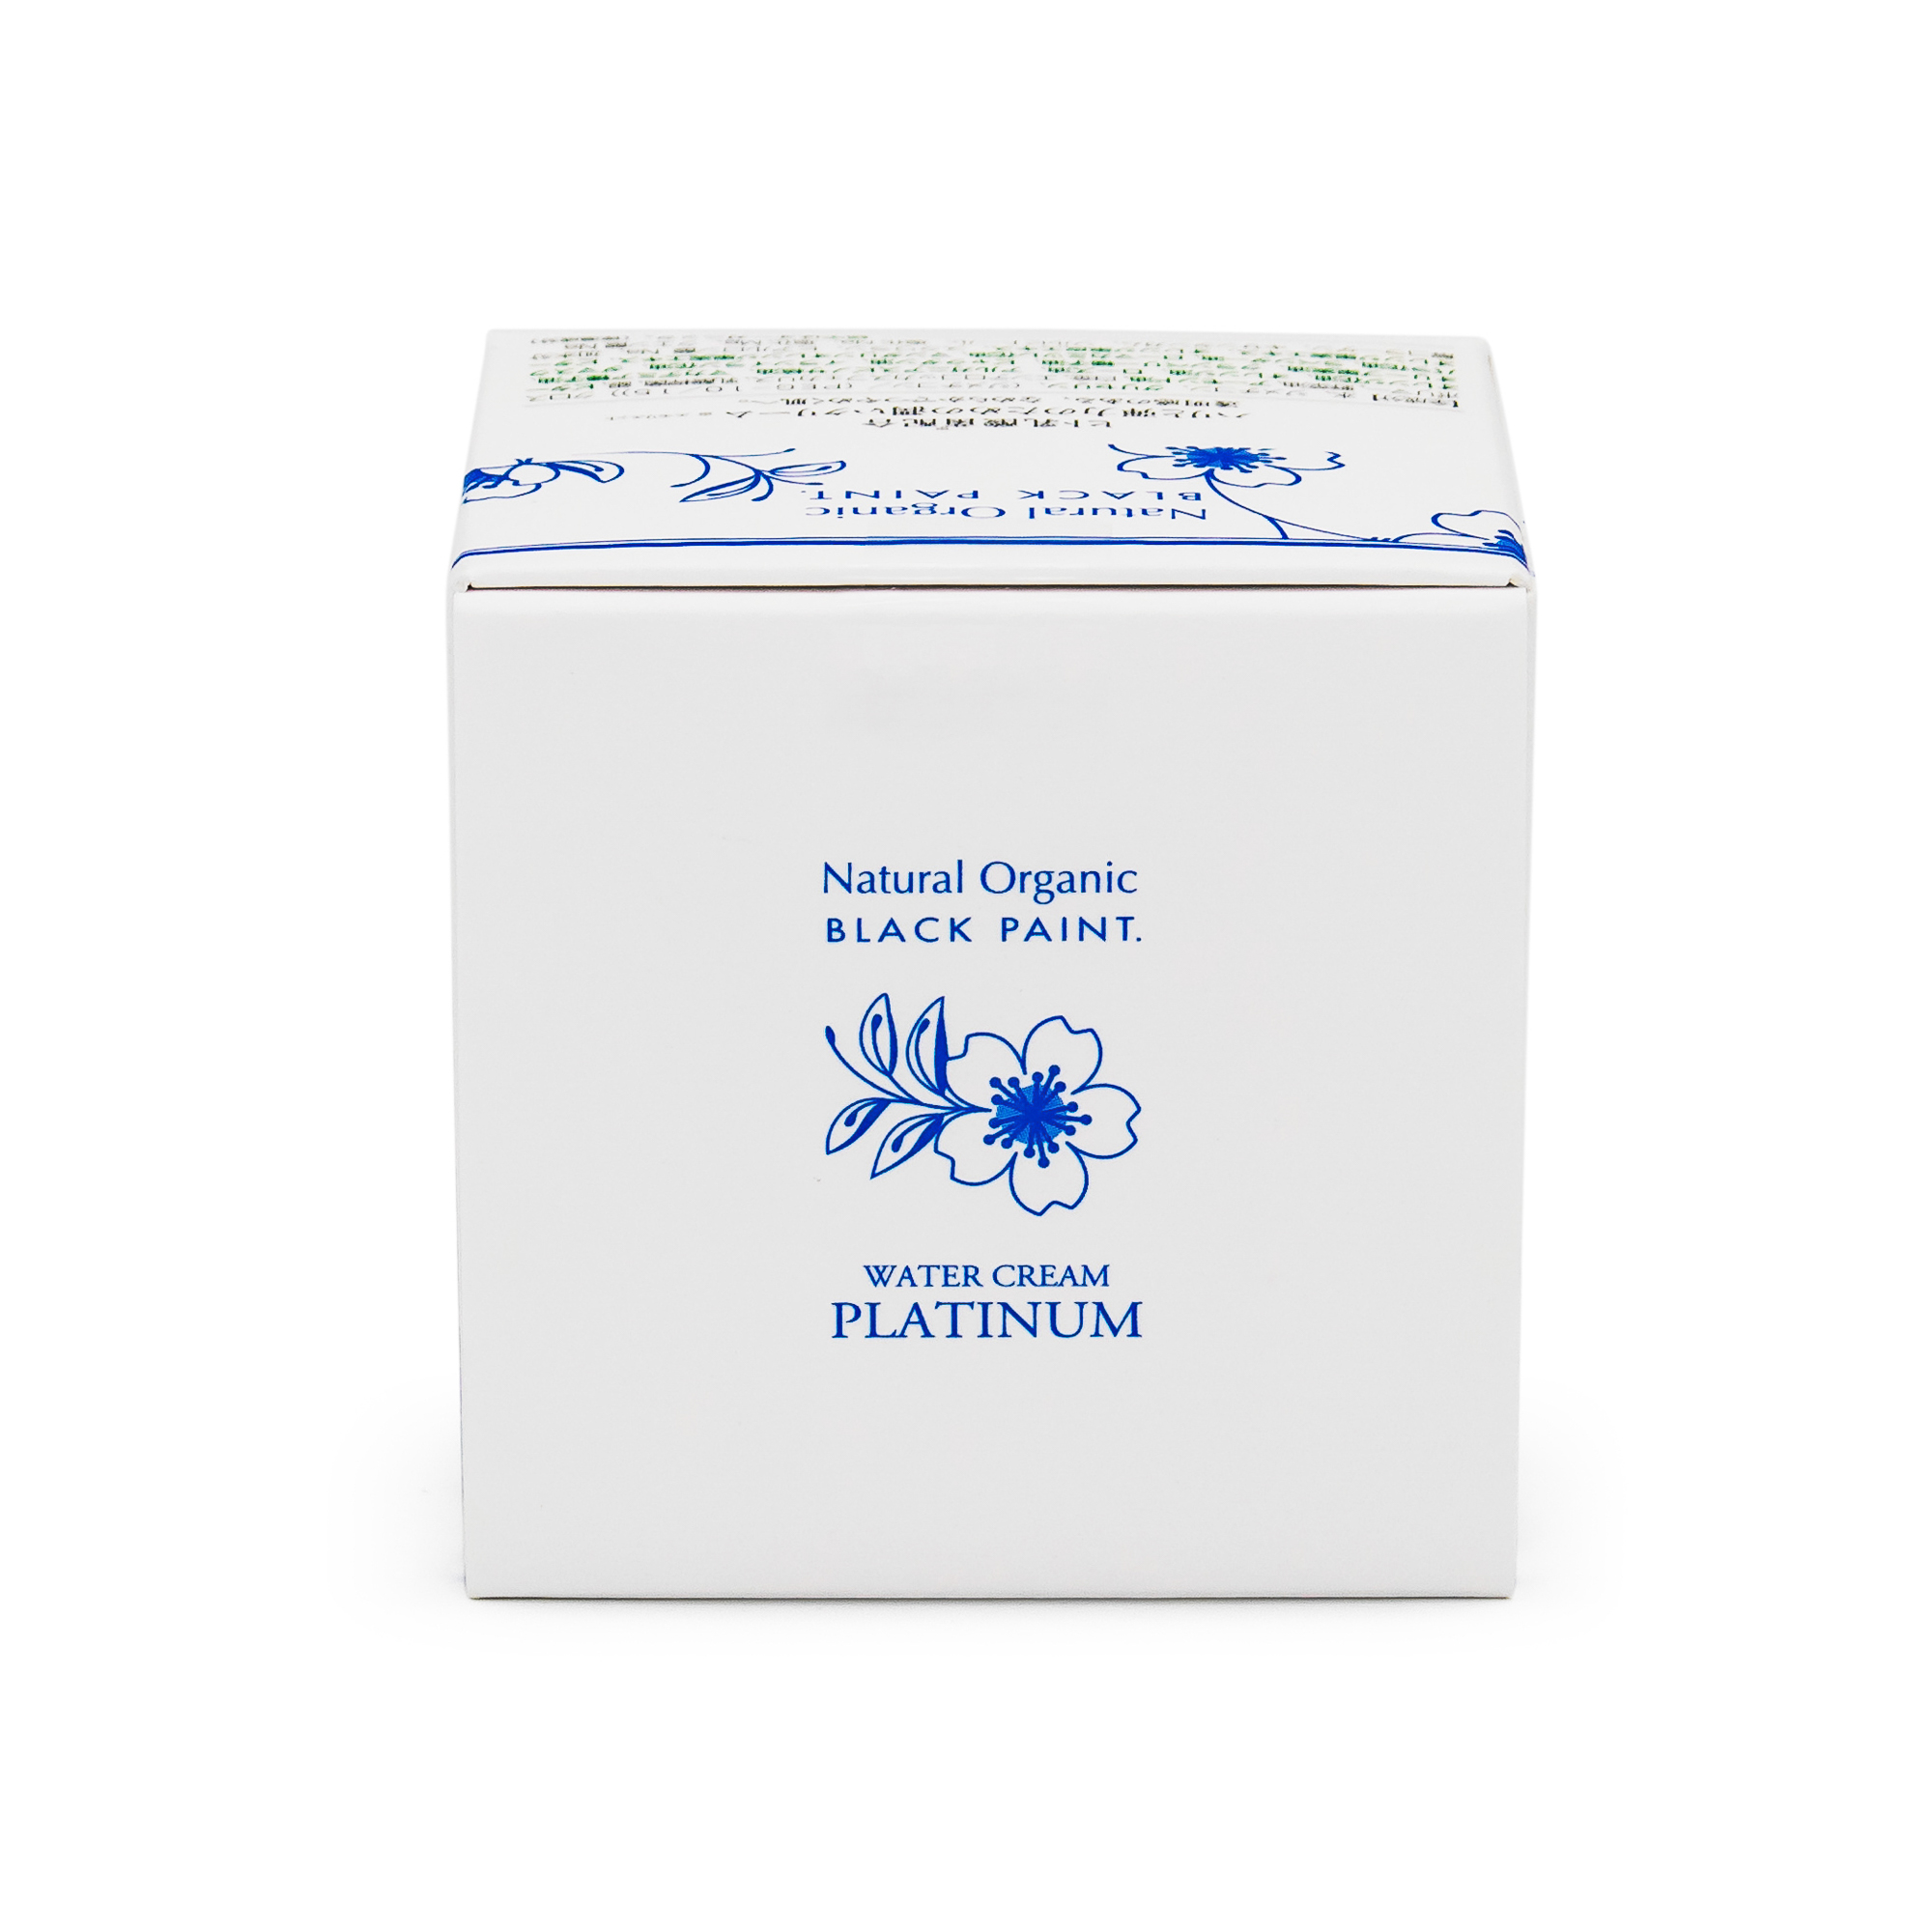 Water Cream Platinum 25g with Human Microbiome - box top